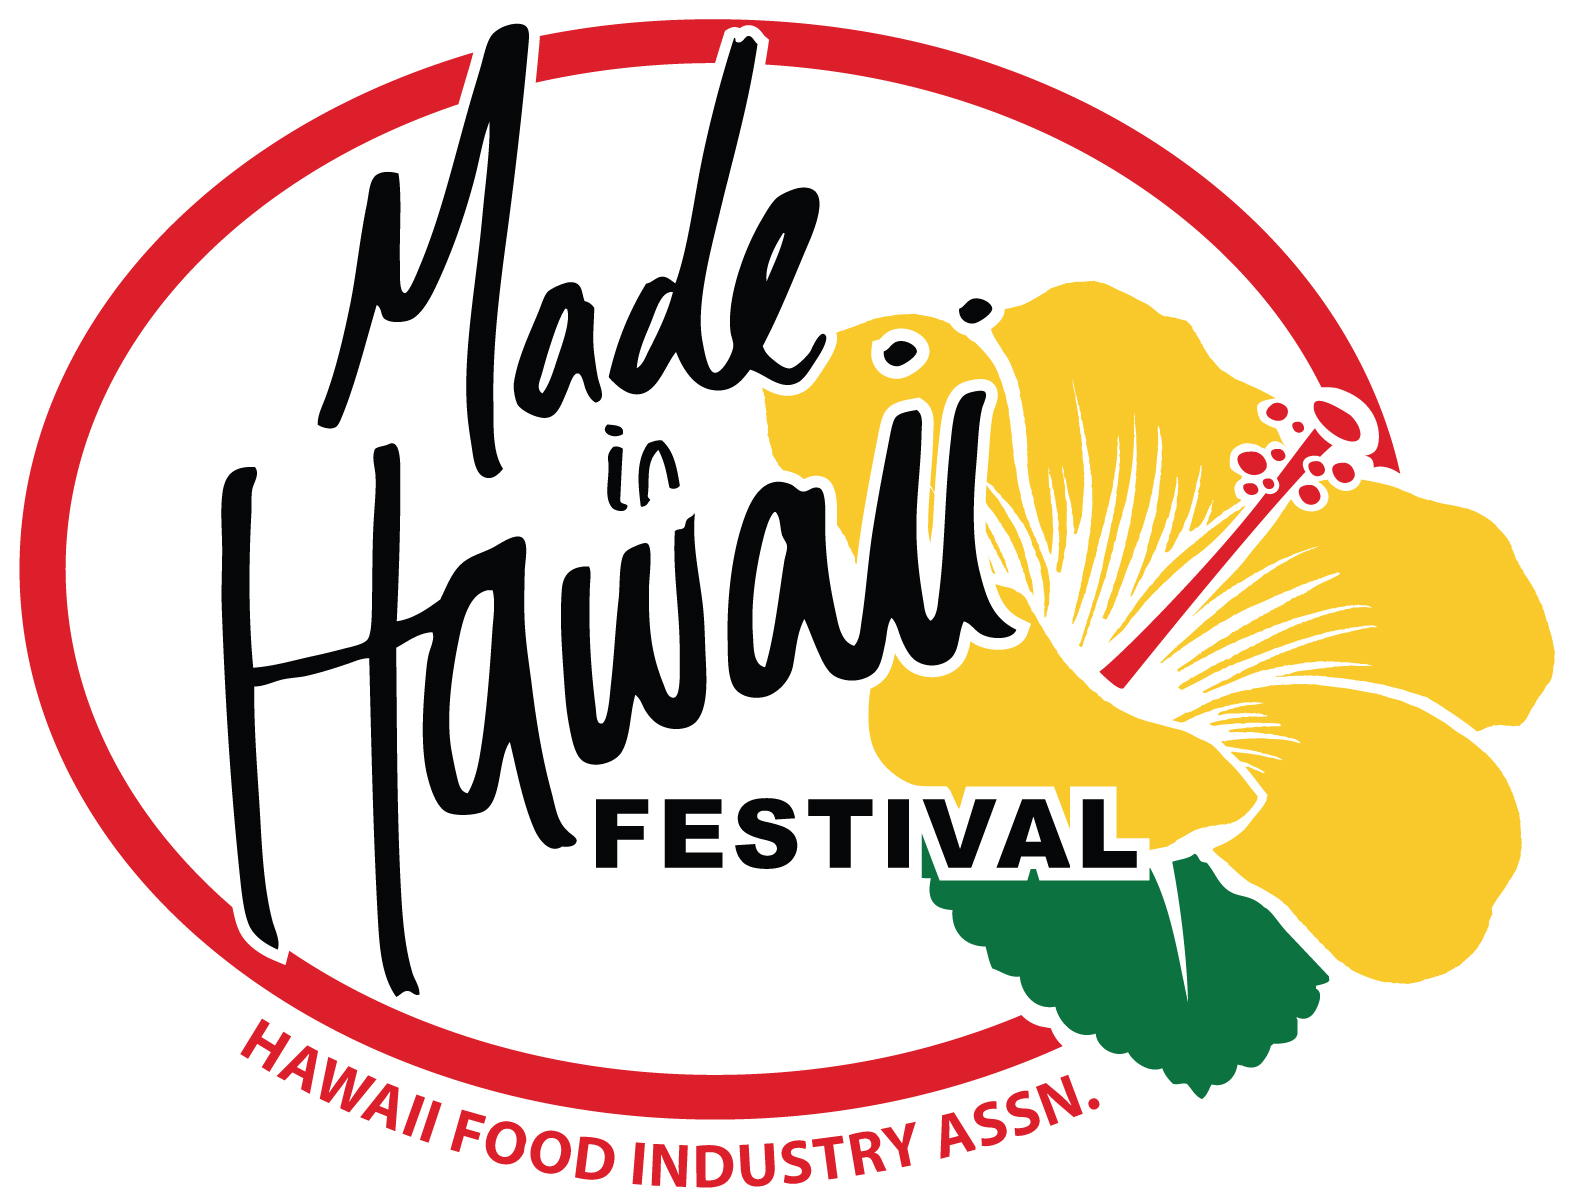 Made in Hawaii Festival